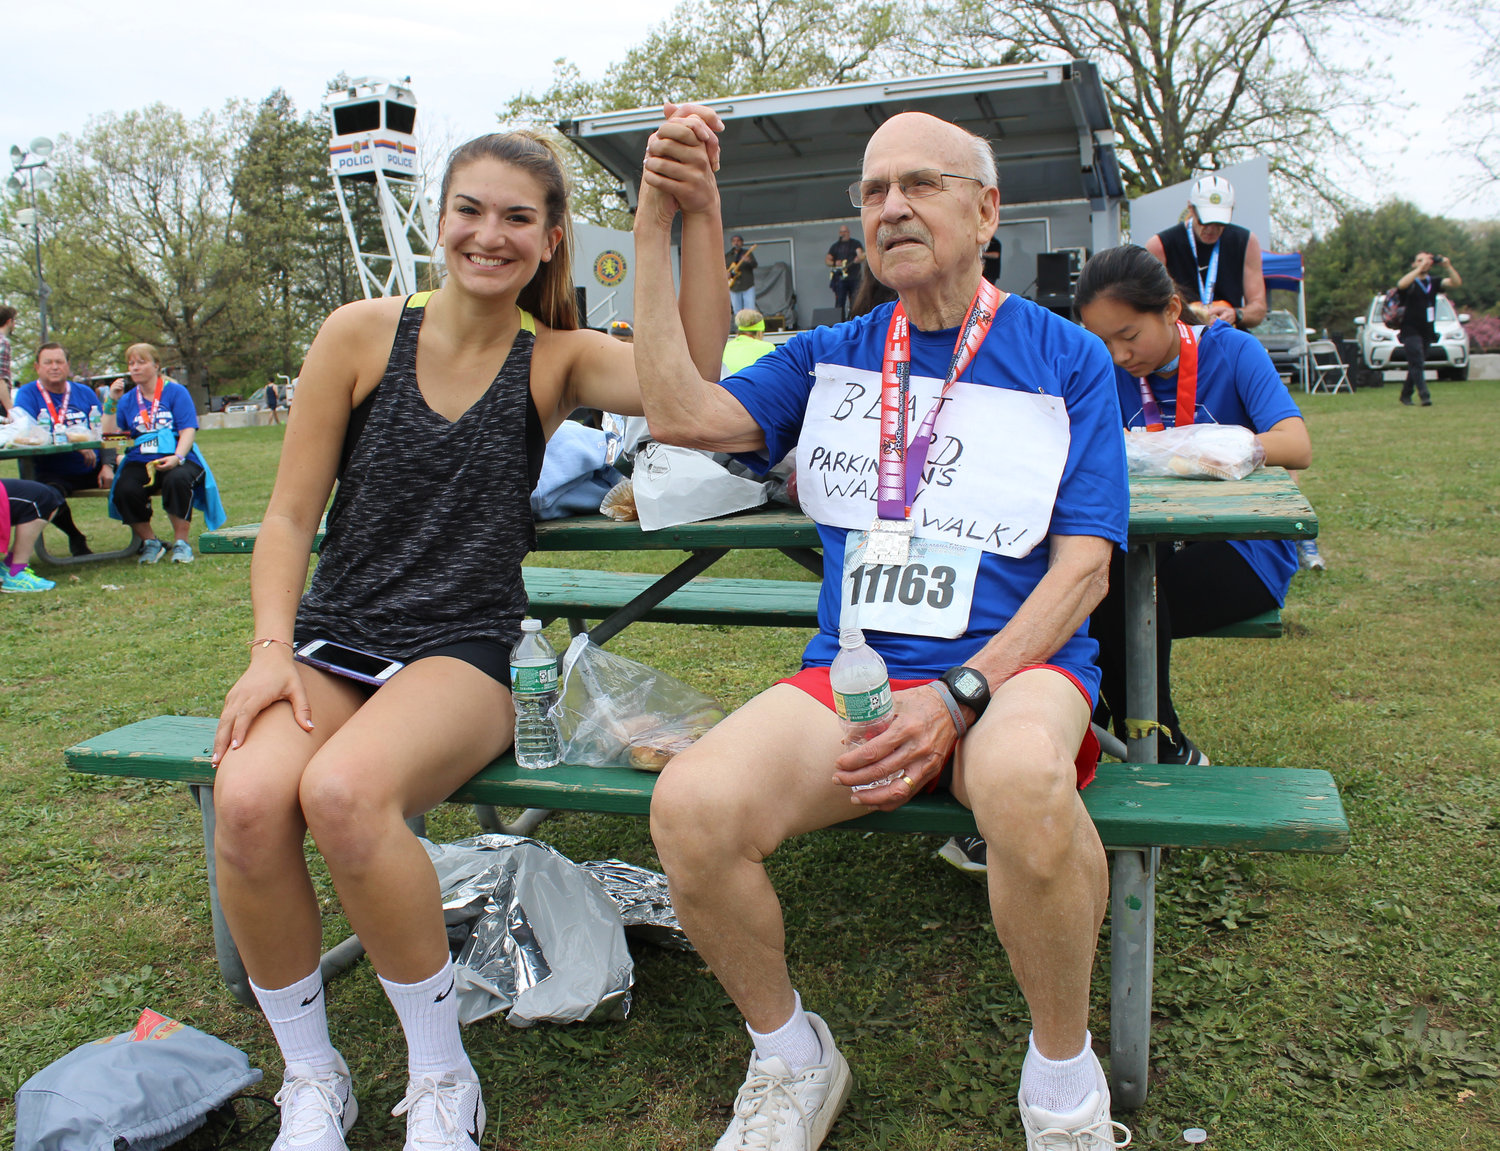 Nestor Barrezueta, 83, of East Meadow, has battled Parkinson's disease for 20 years, but he doesn't let it stop him from running. He competed in last year's Long Island Marathon with his granddaughter Anna Paulik, 22.